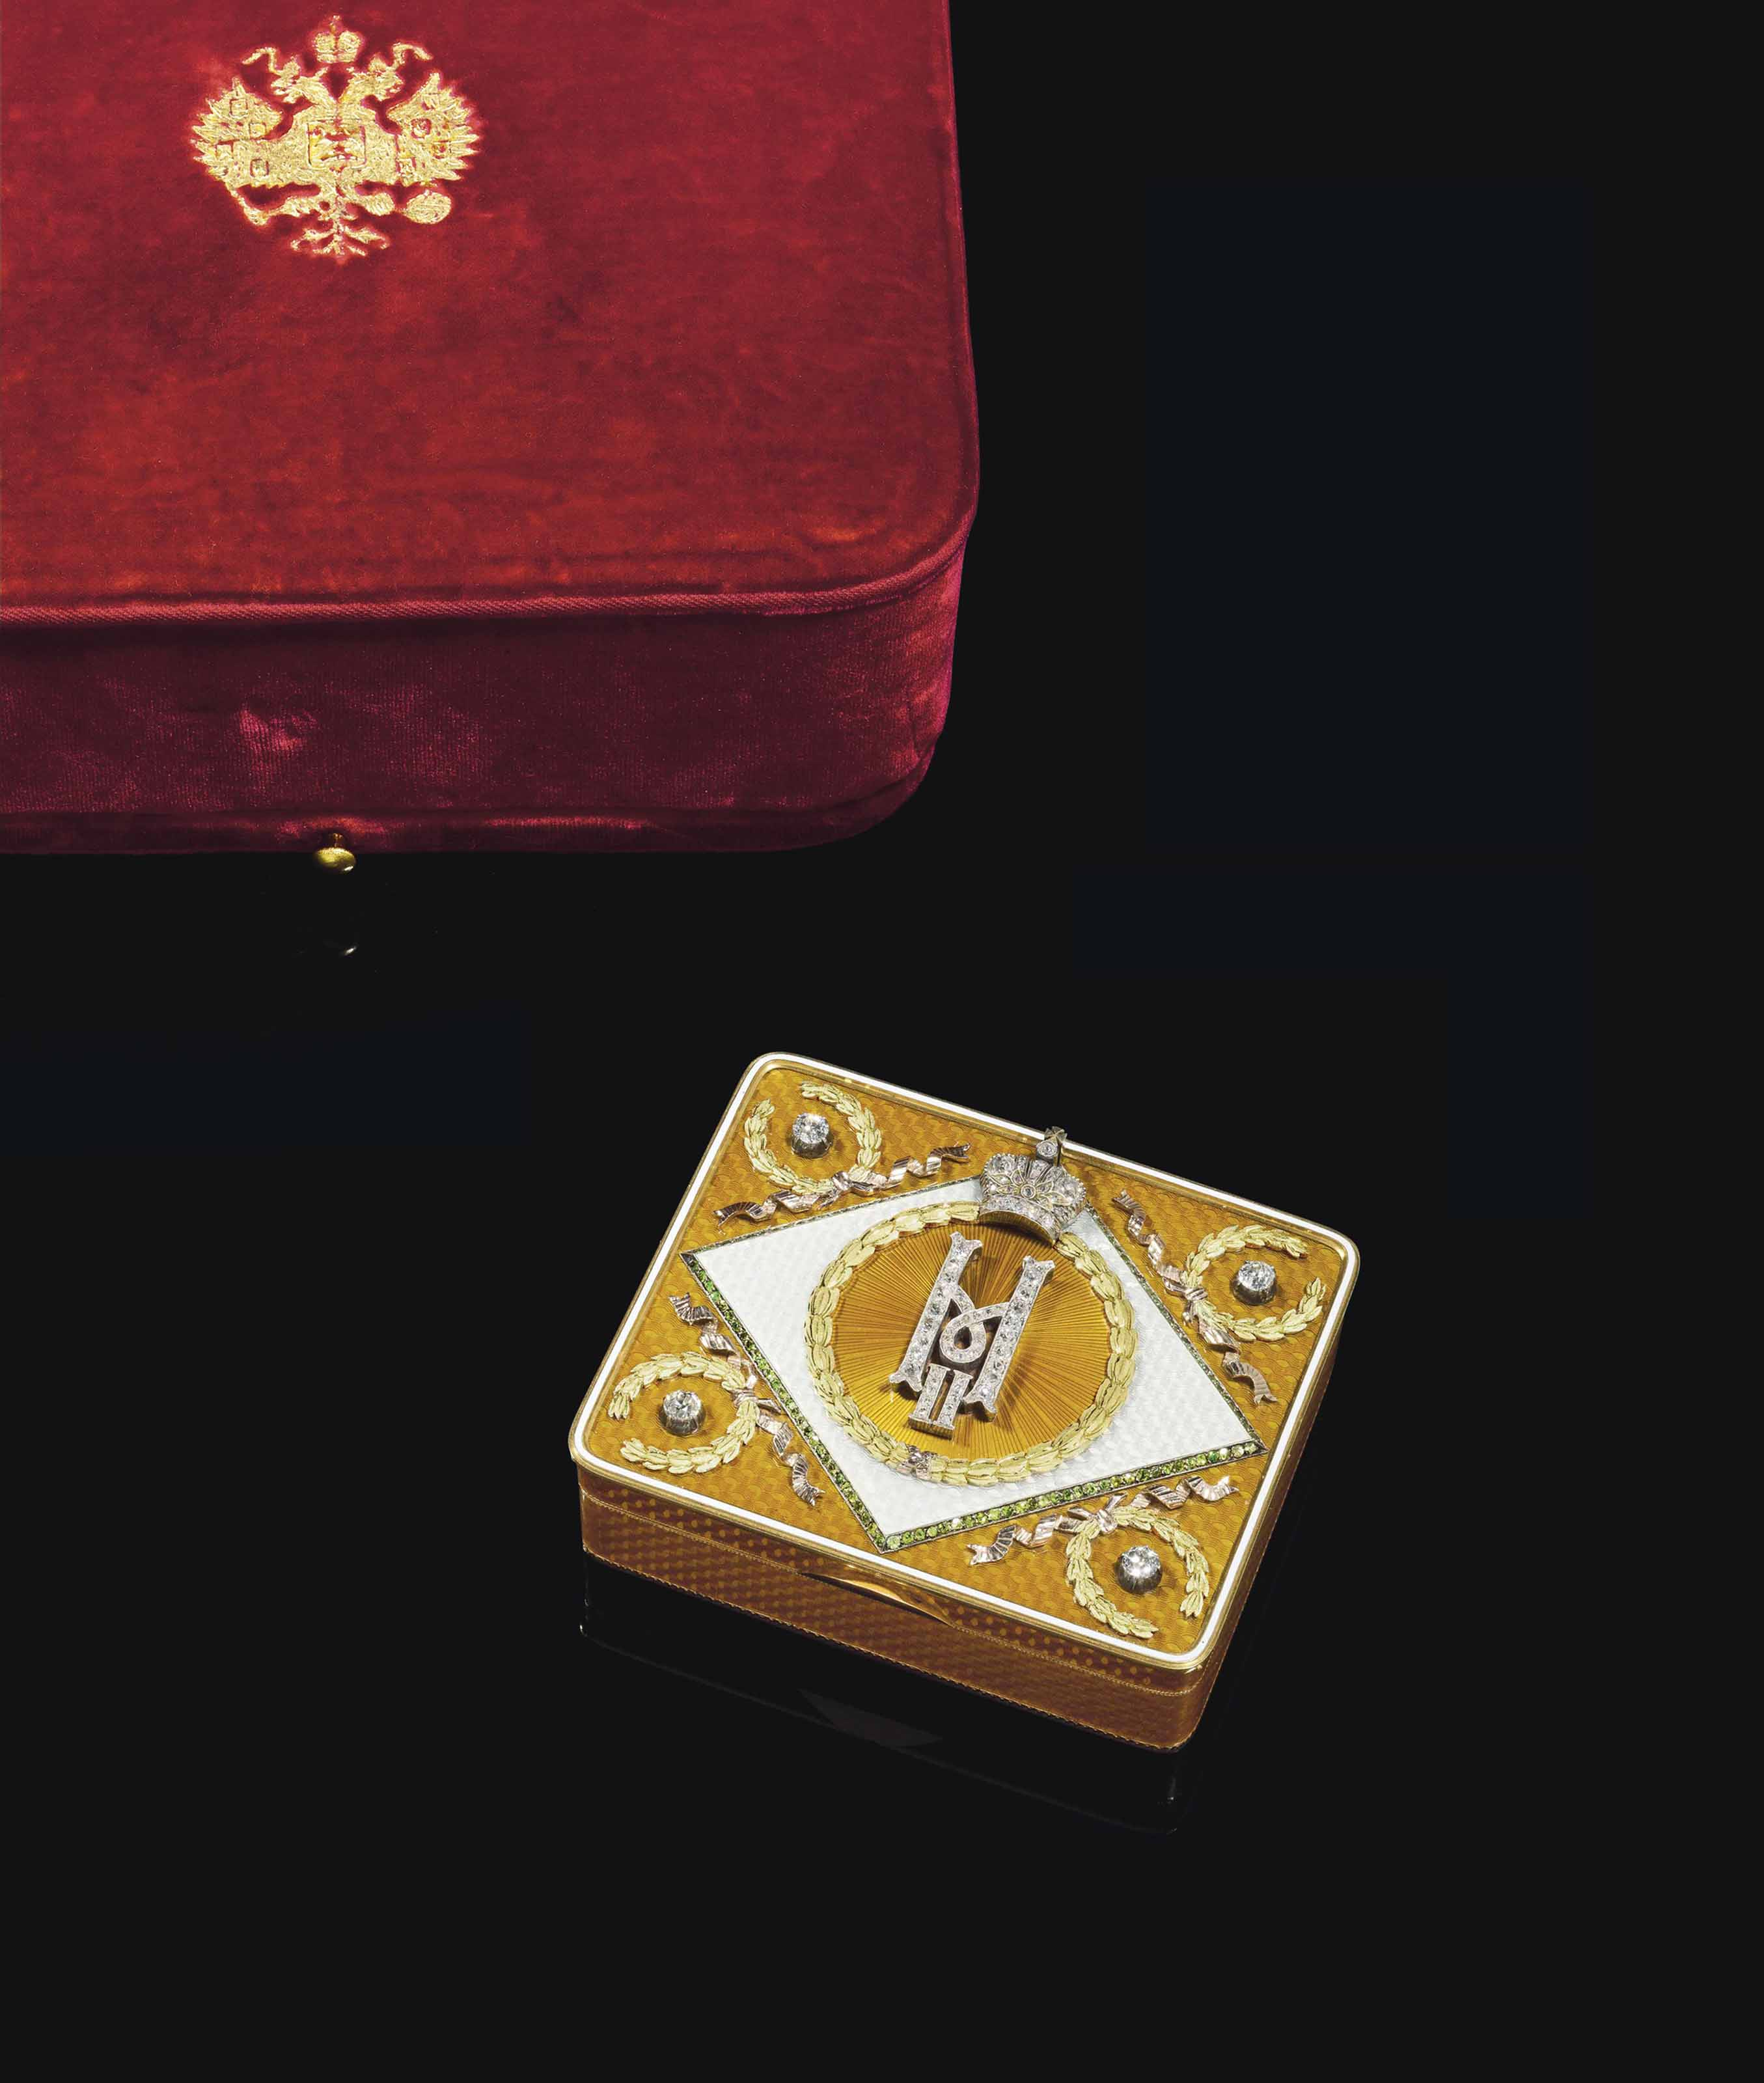 A JEWELLED TWO-COLOUR GOLD AND GUILLOCHÉ ENAMEL IMPERIAL PRESENTATION SNUFF-BOX